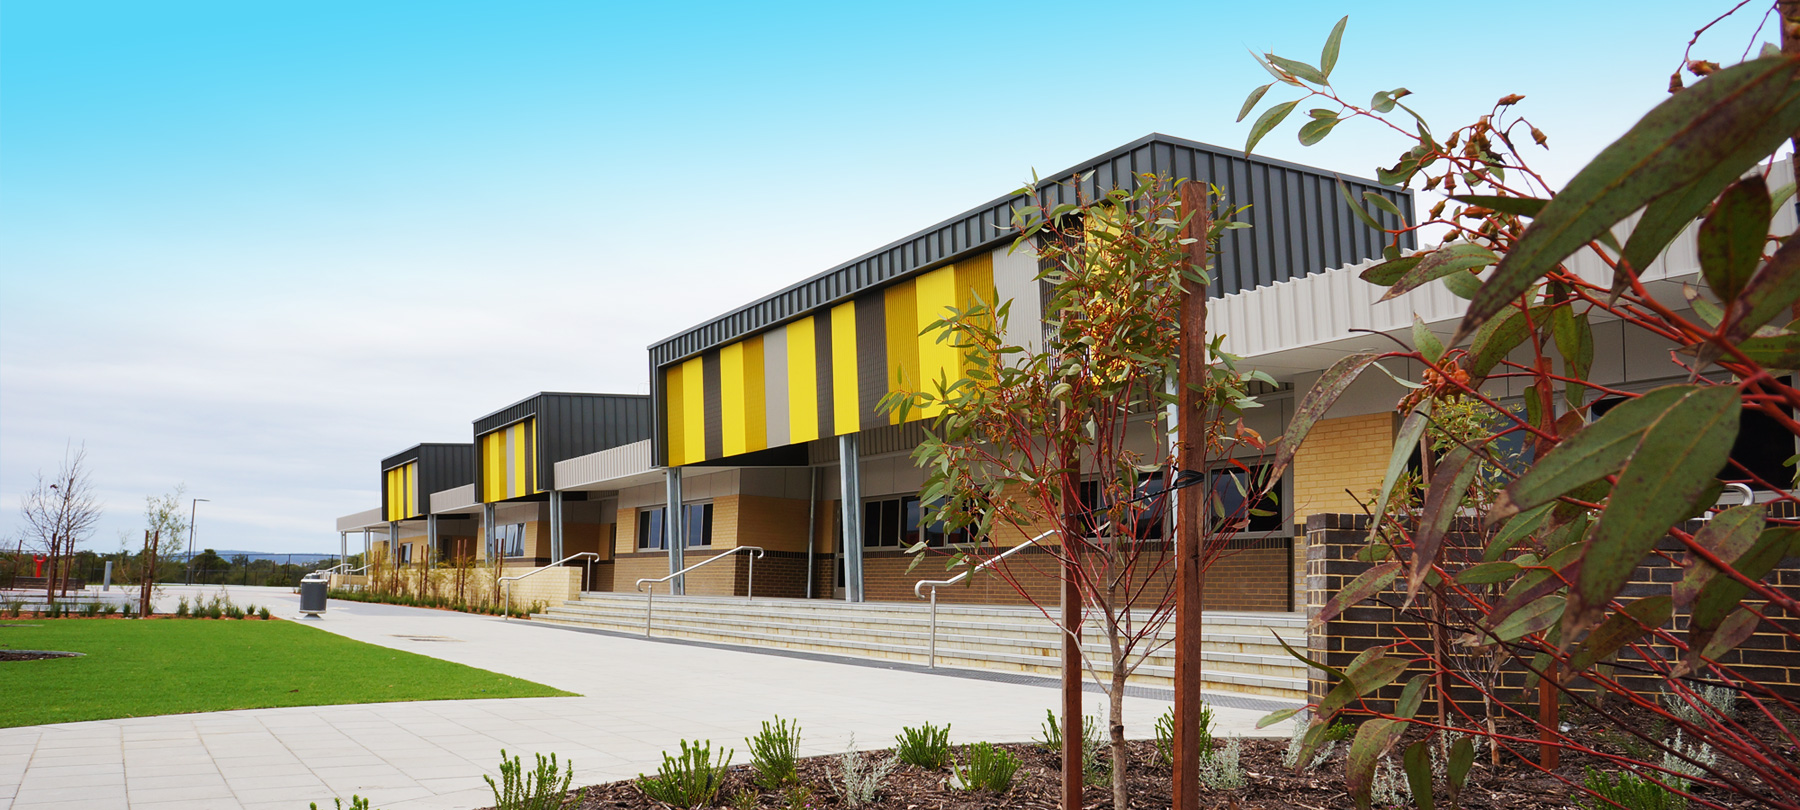 Helpful Information - Harrisdale SHS - Excellence in